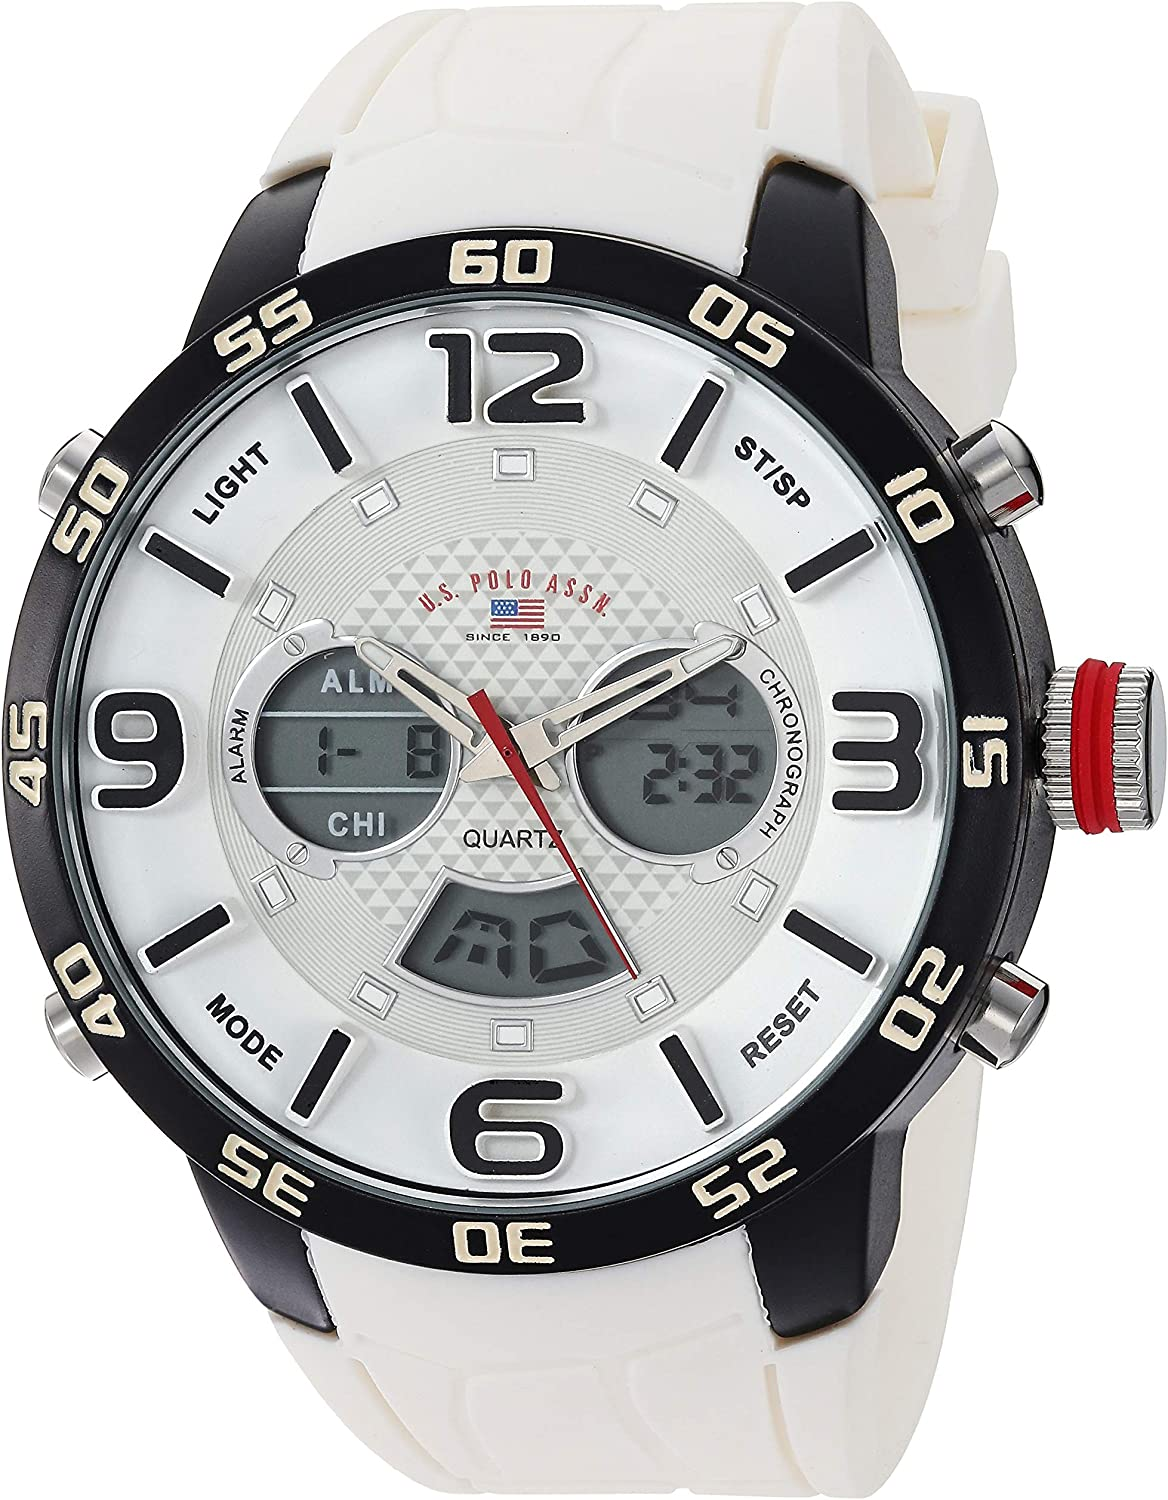 2021 spring and summer new U.S. Max 69% OFF Polo Assn. Men's Analog-Quartz with Watch Whi Rubber Strap